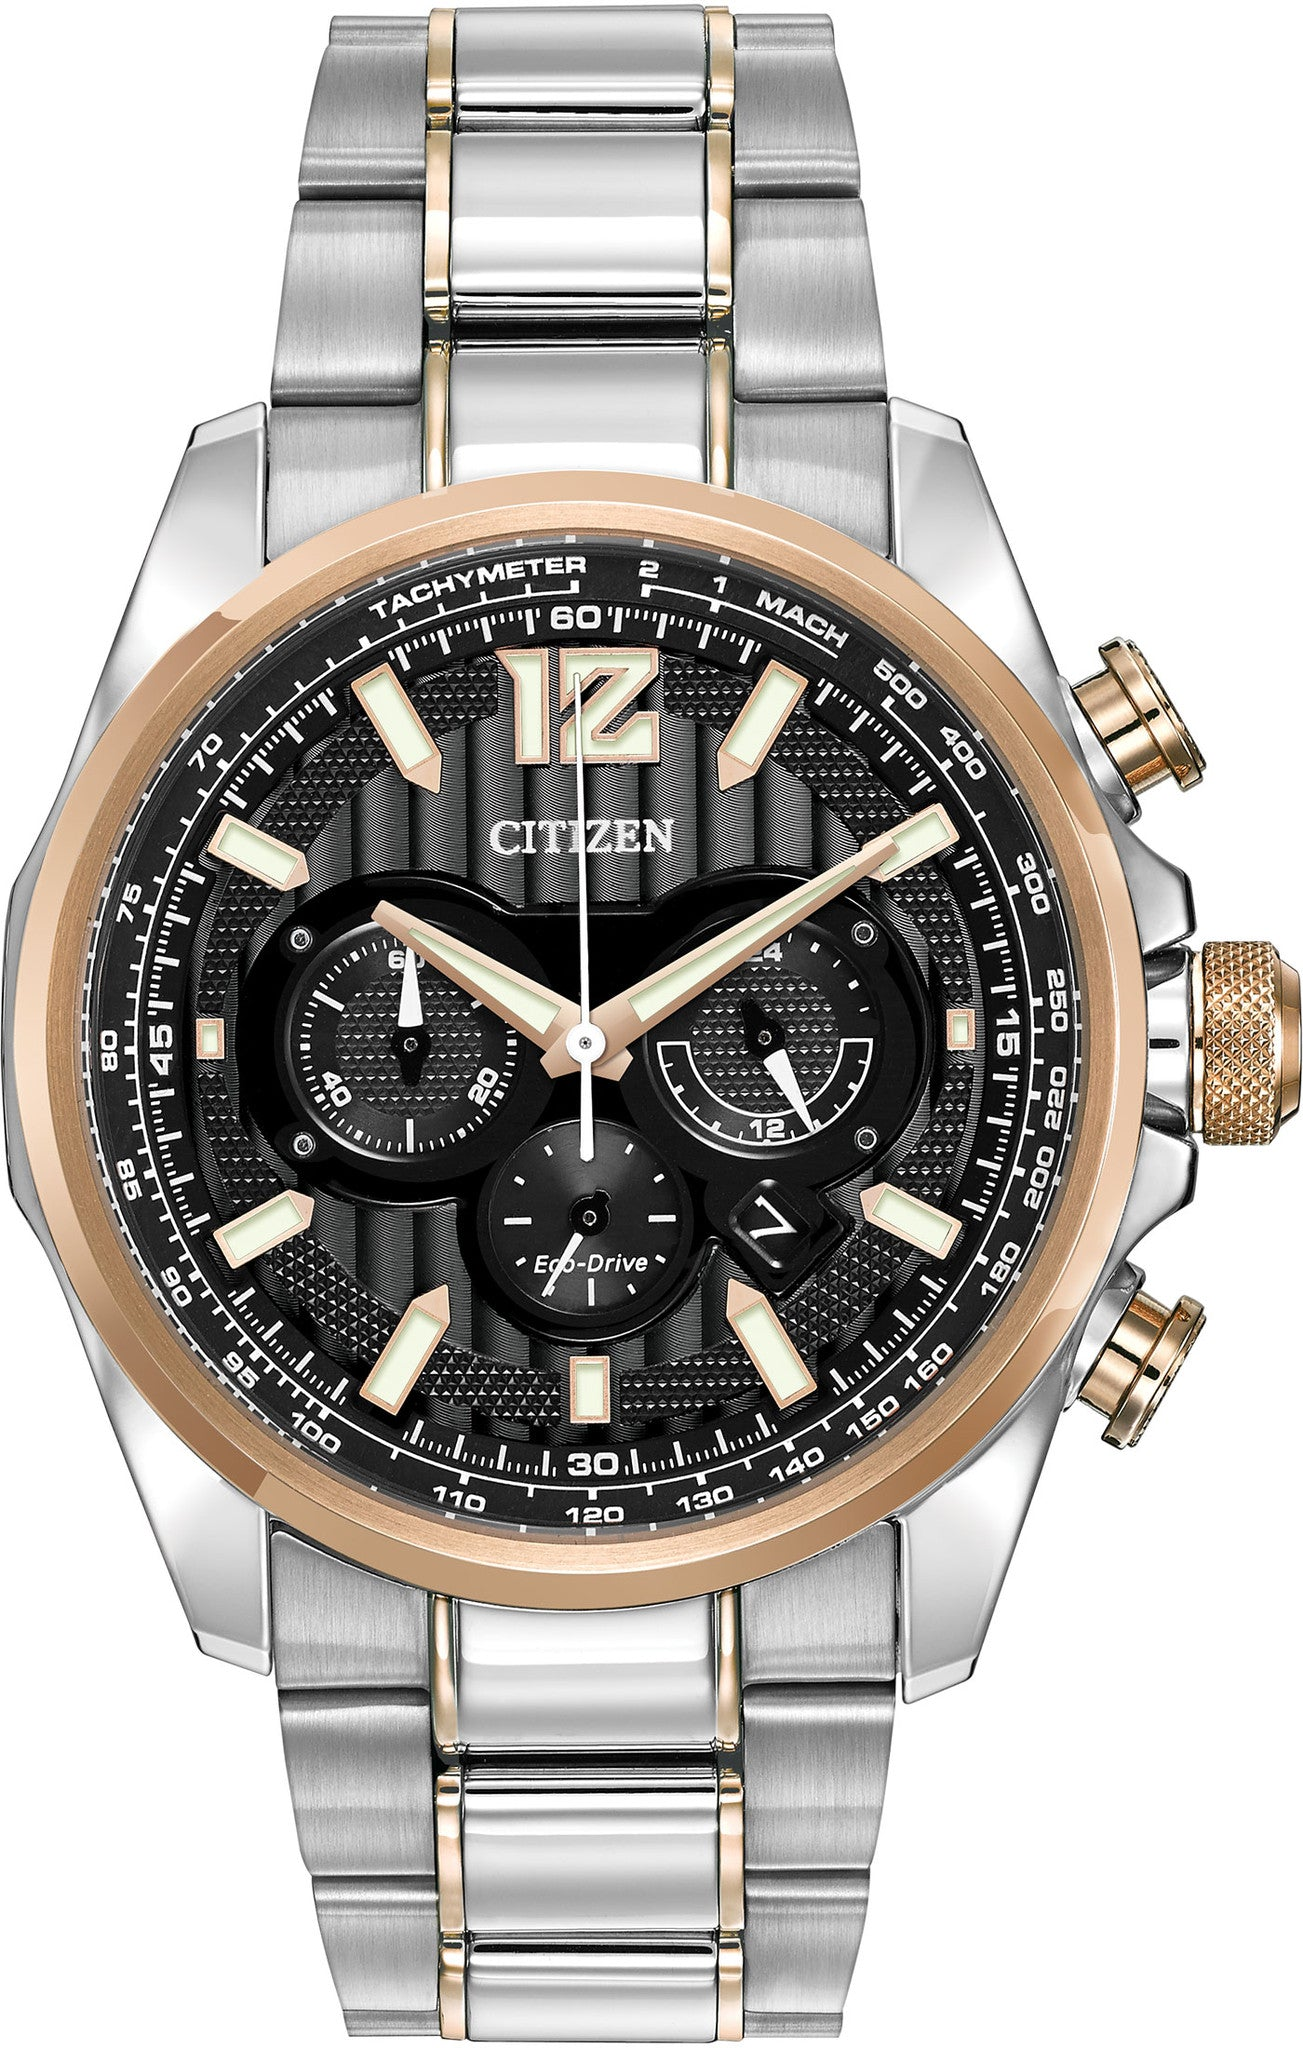 Citizen Watch Eco Drive Shadowhawk